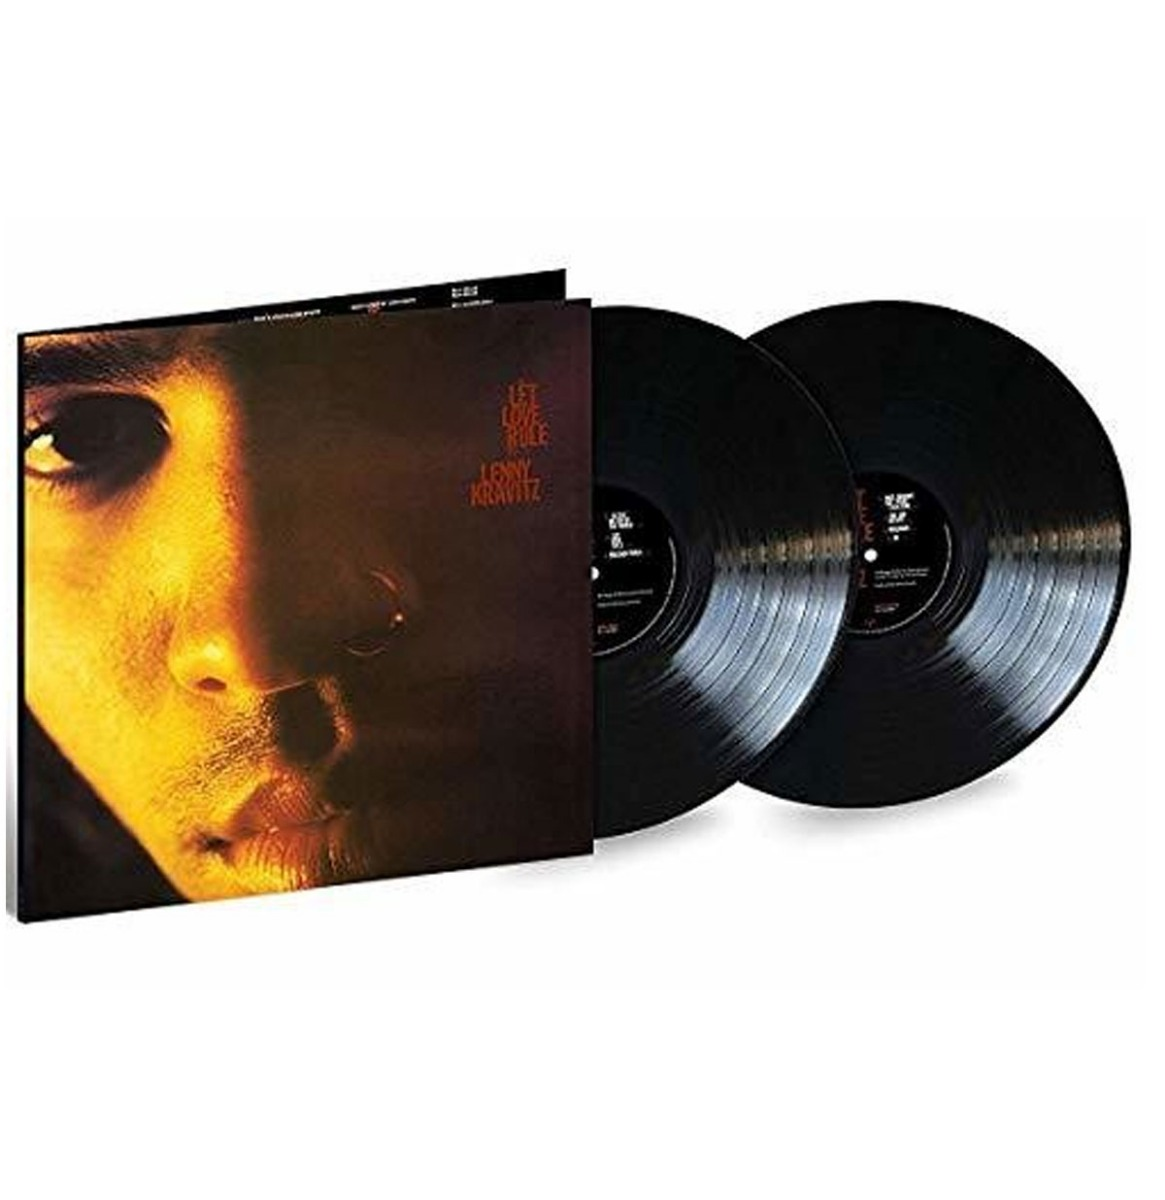 Lenny Kravitz - Let Love Rule LP